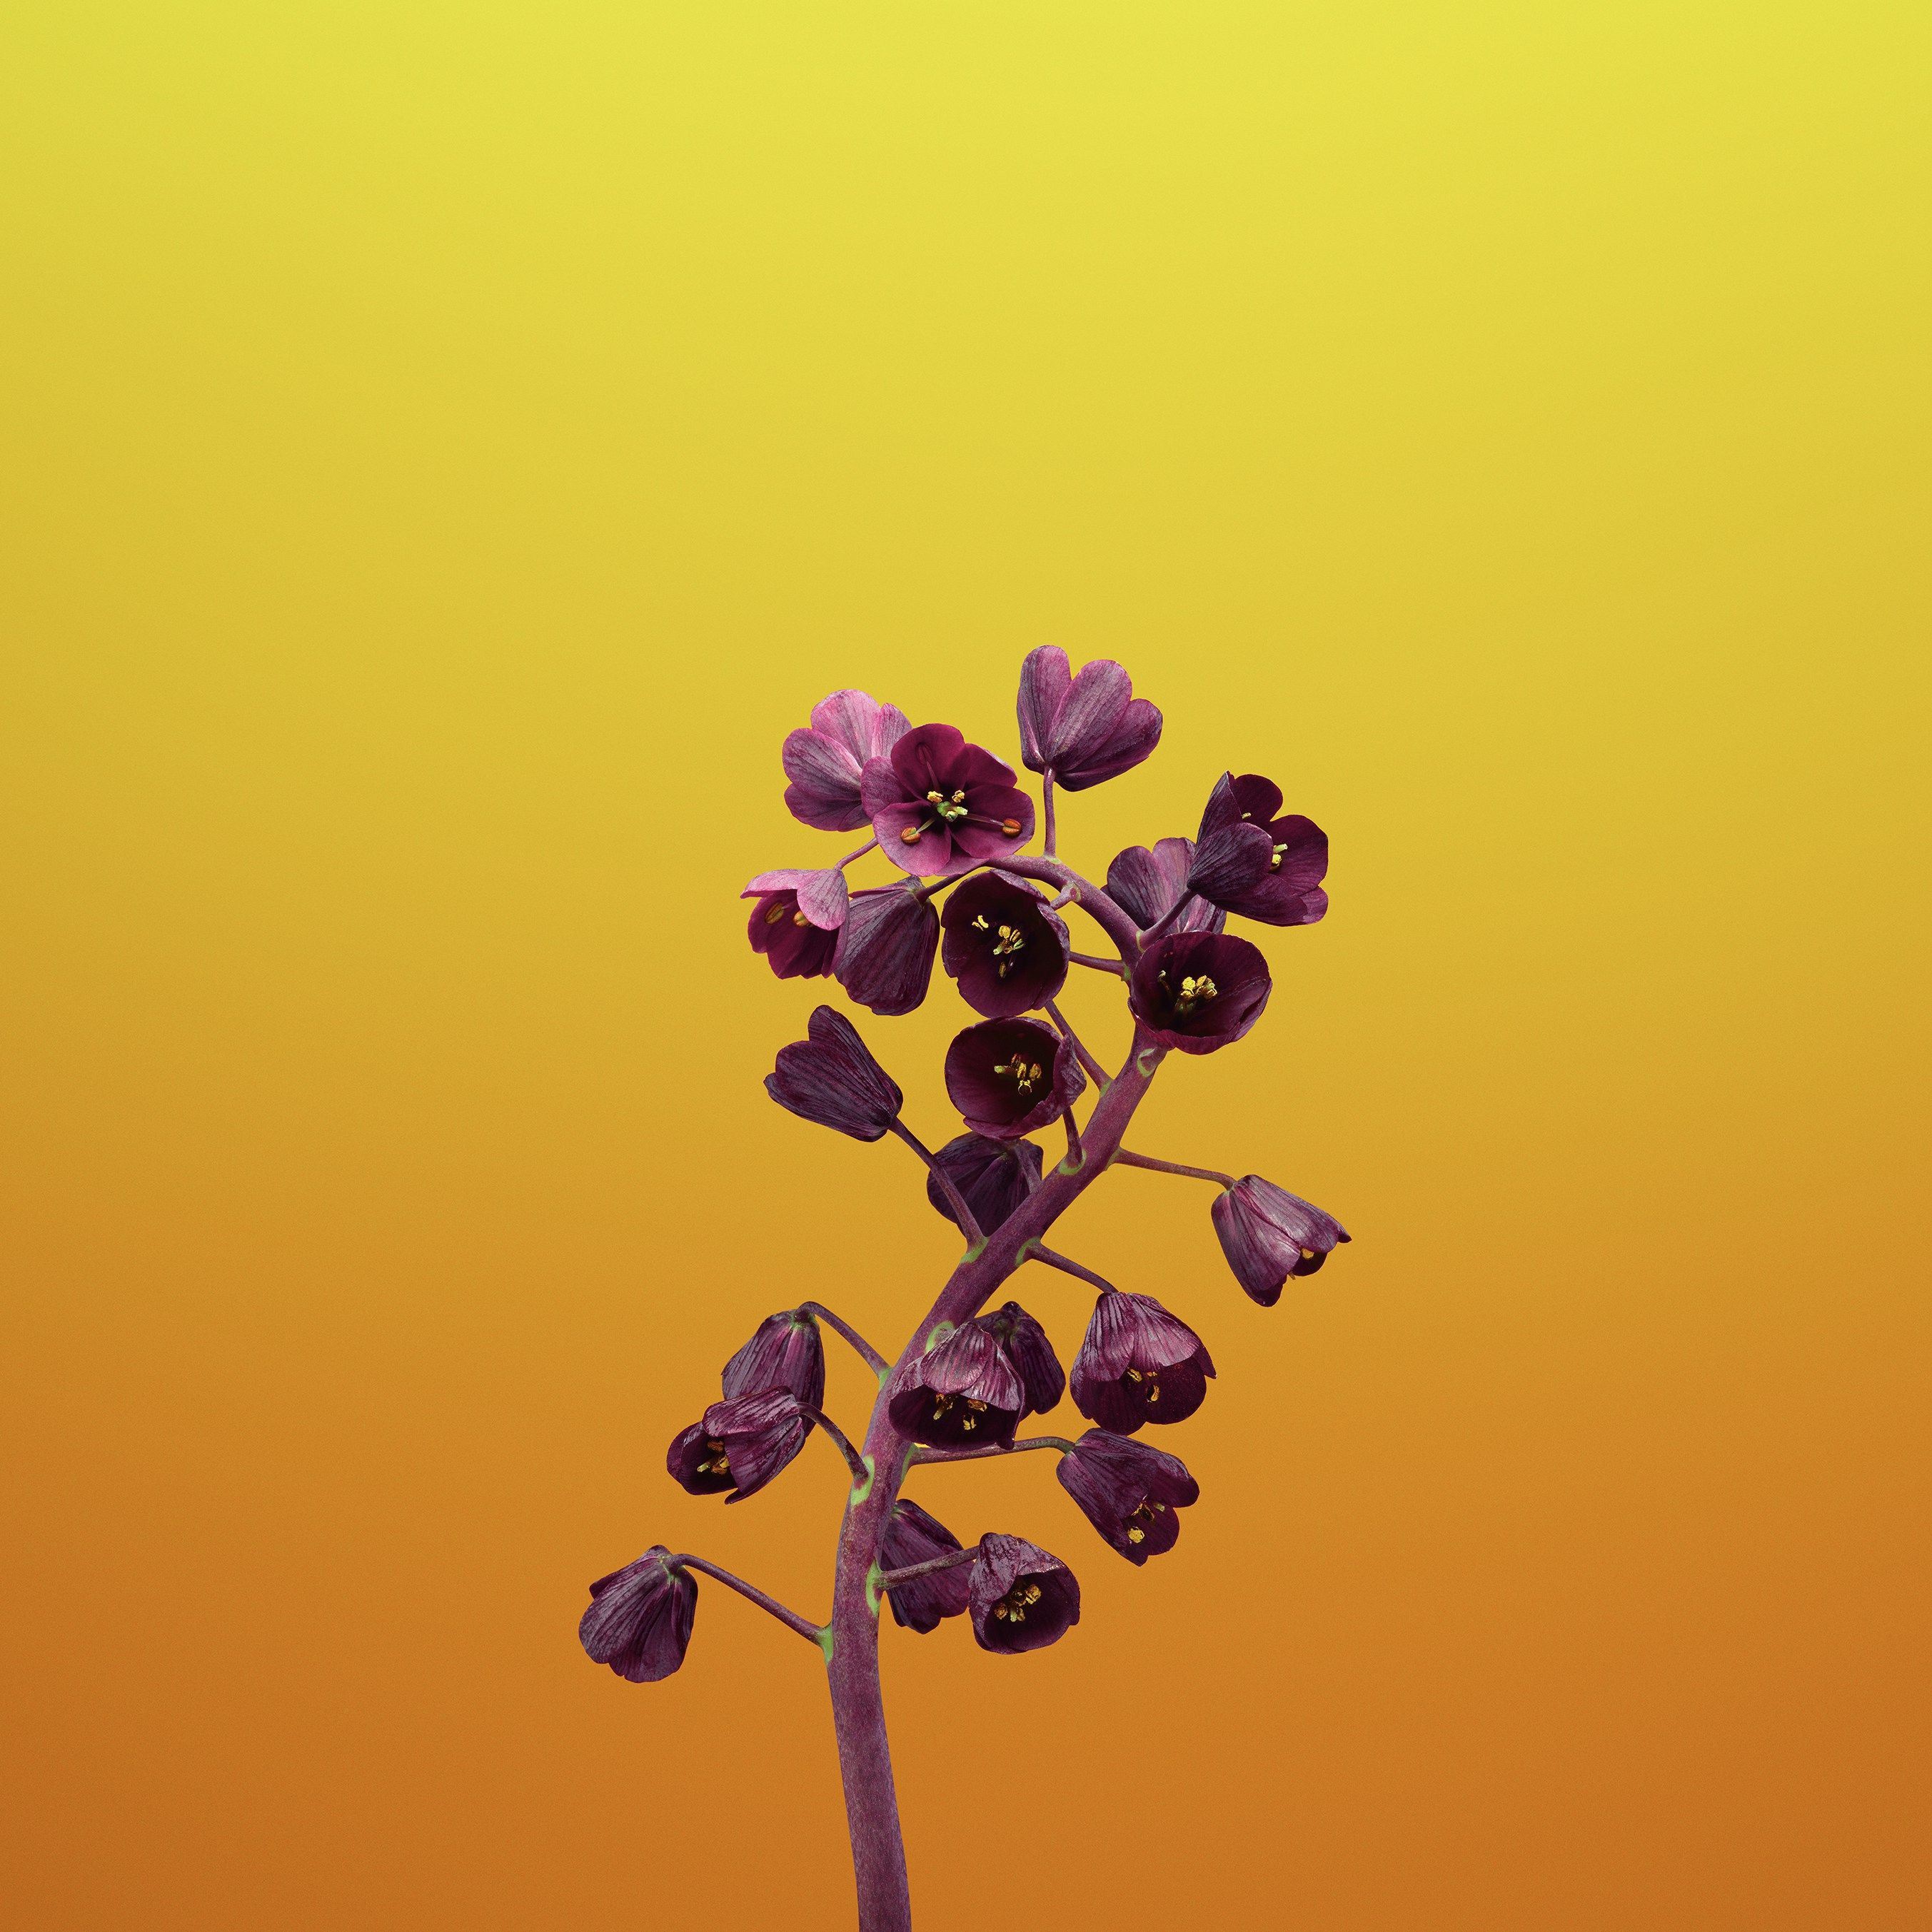 These 20 Gorgeous Ios 11 Wallpapers Will Pretty Up Your Phone Apple Wallpaper Ios 11 Wallpaper Flower Illustration